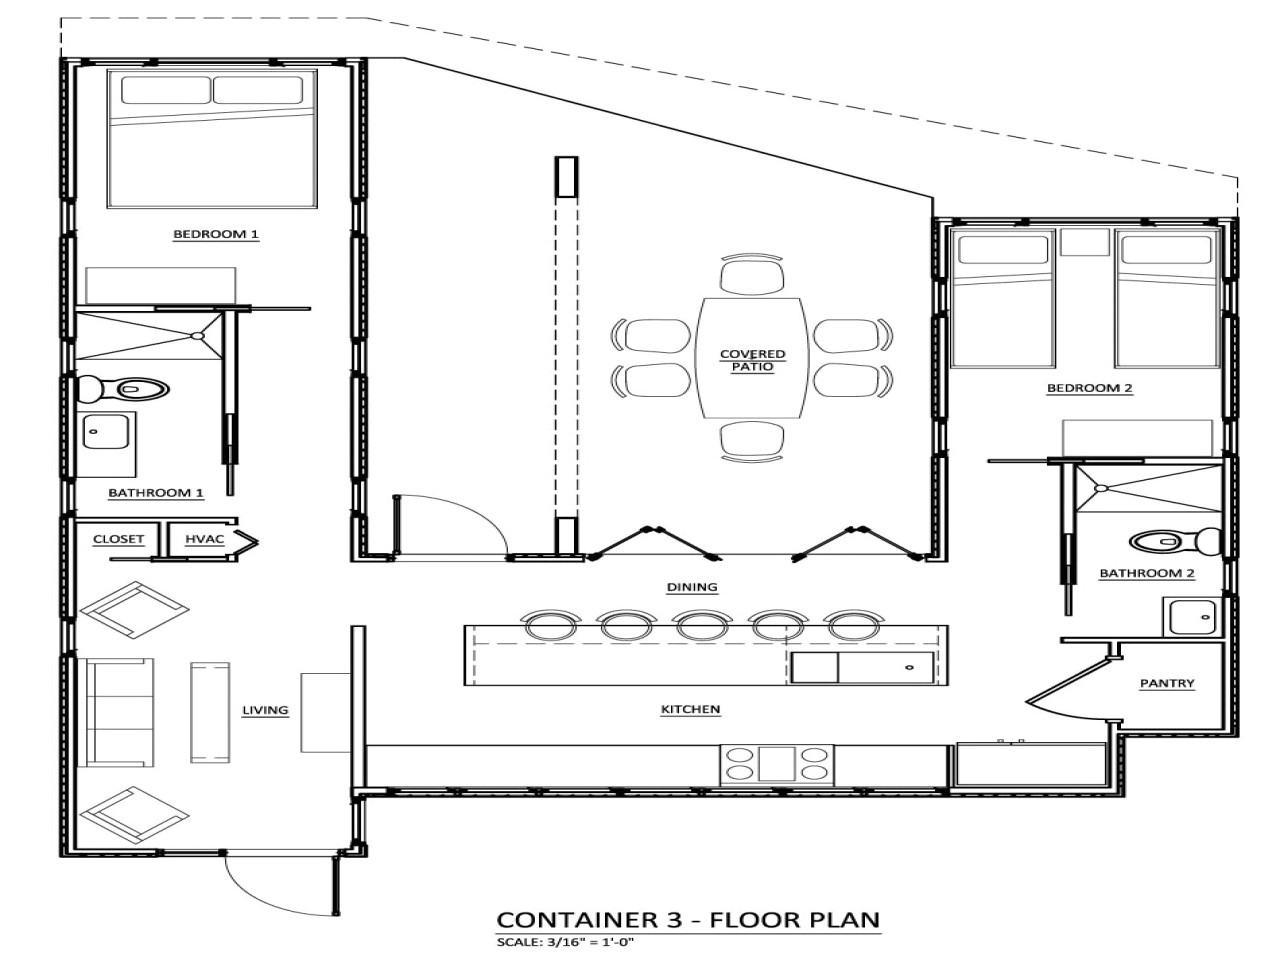 ac87dff70febaf4c purchase shipping containers shipping container home floor plans house